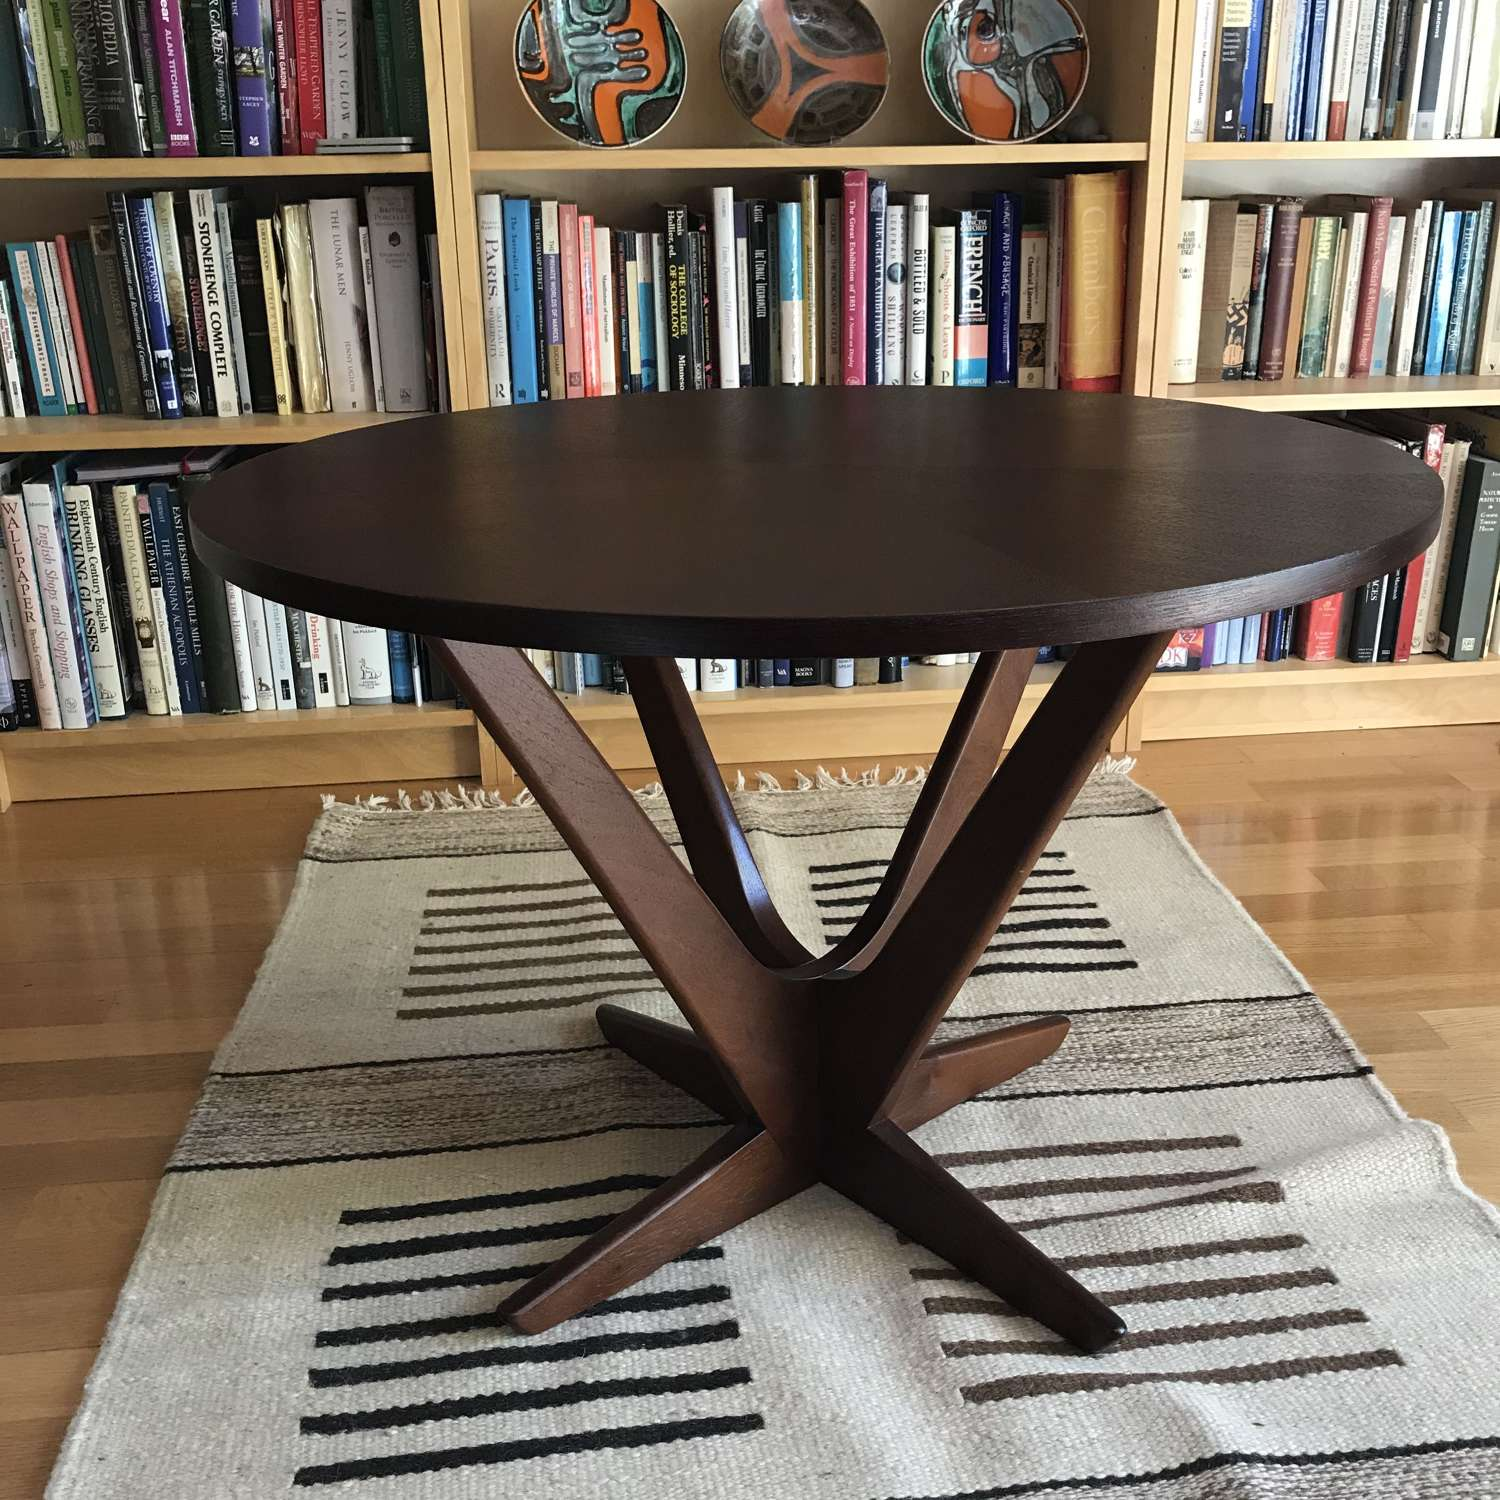 Danish Teak Starburst Coffee Table Soren Georg Jensen Kubus 1960s